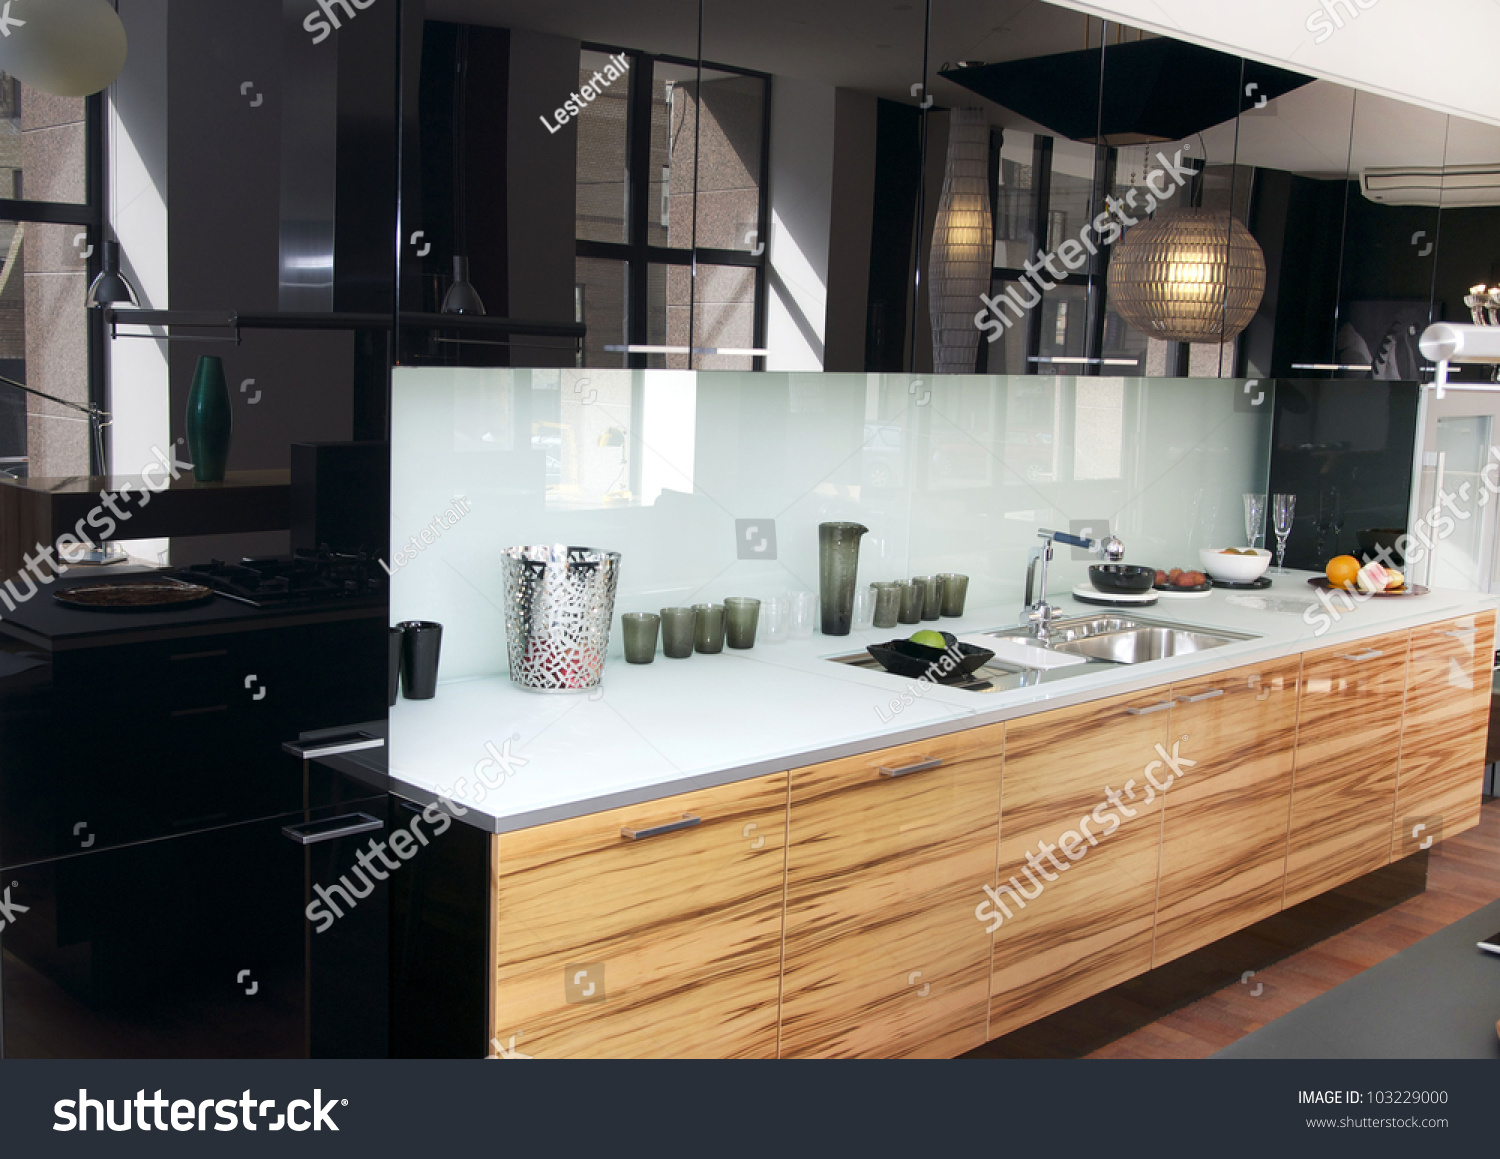 Stylish Kitchen Stylish Kitchen Marble Table Stock Photo 103229000 Shutterstock